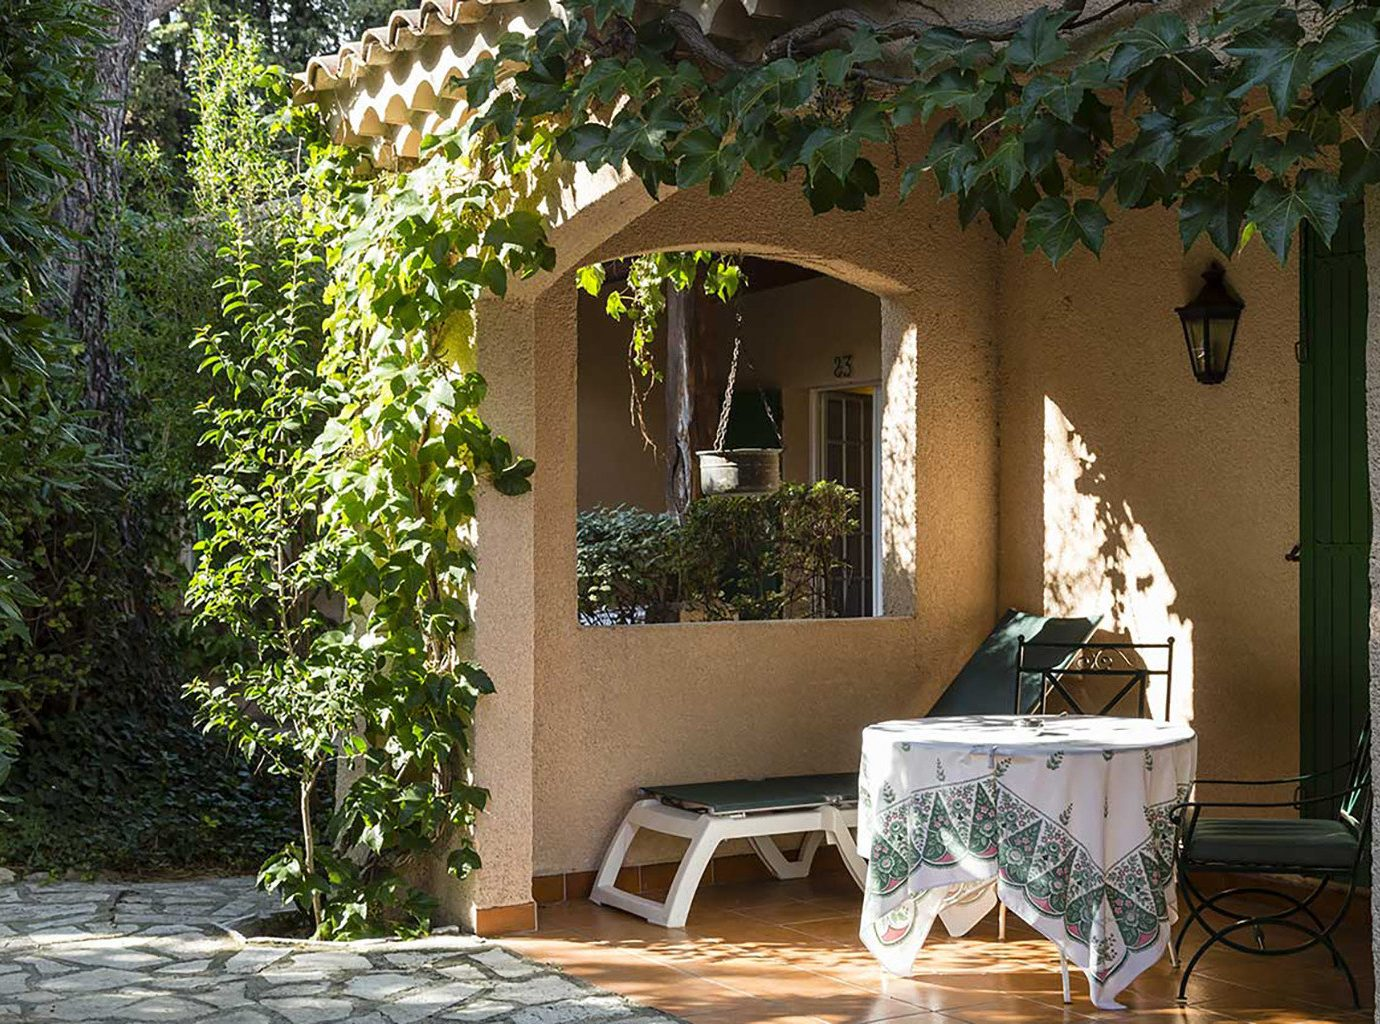 tree house property home Courtyard plant Villa backyard cottage porch outdoor structure hacienda mansion yard Garden